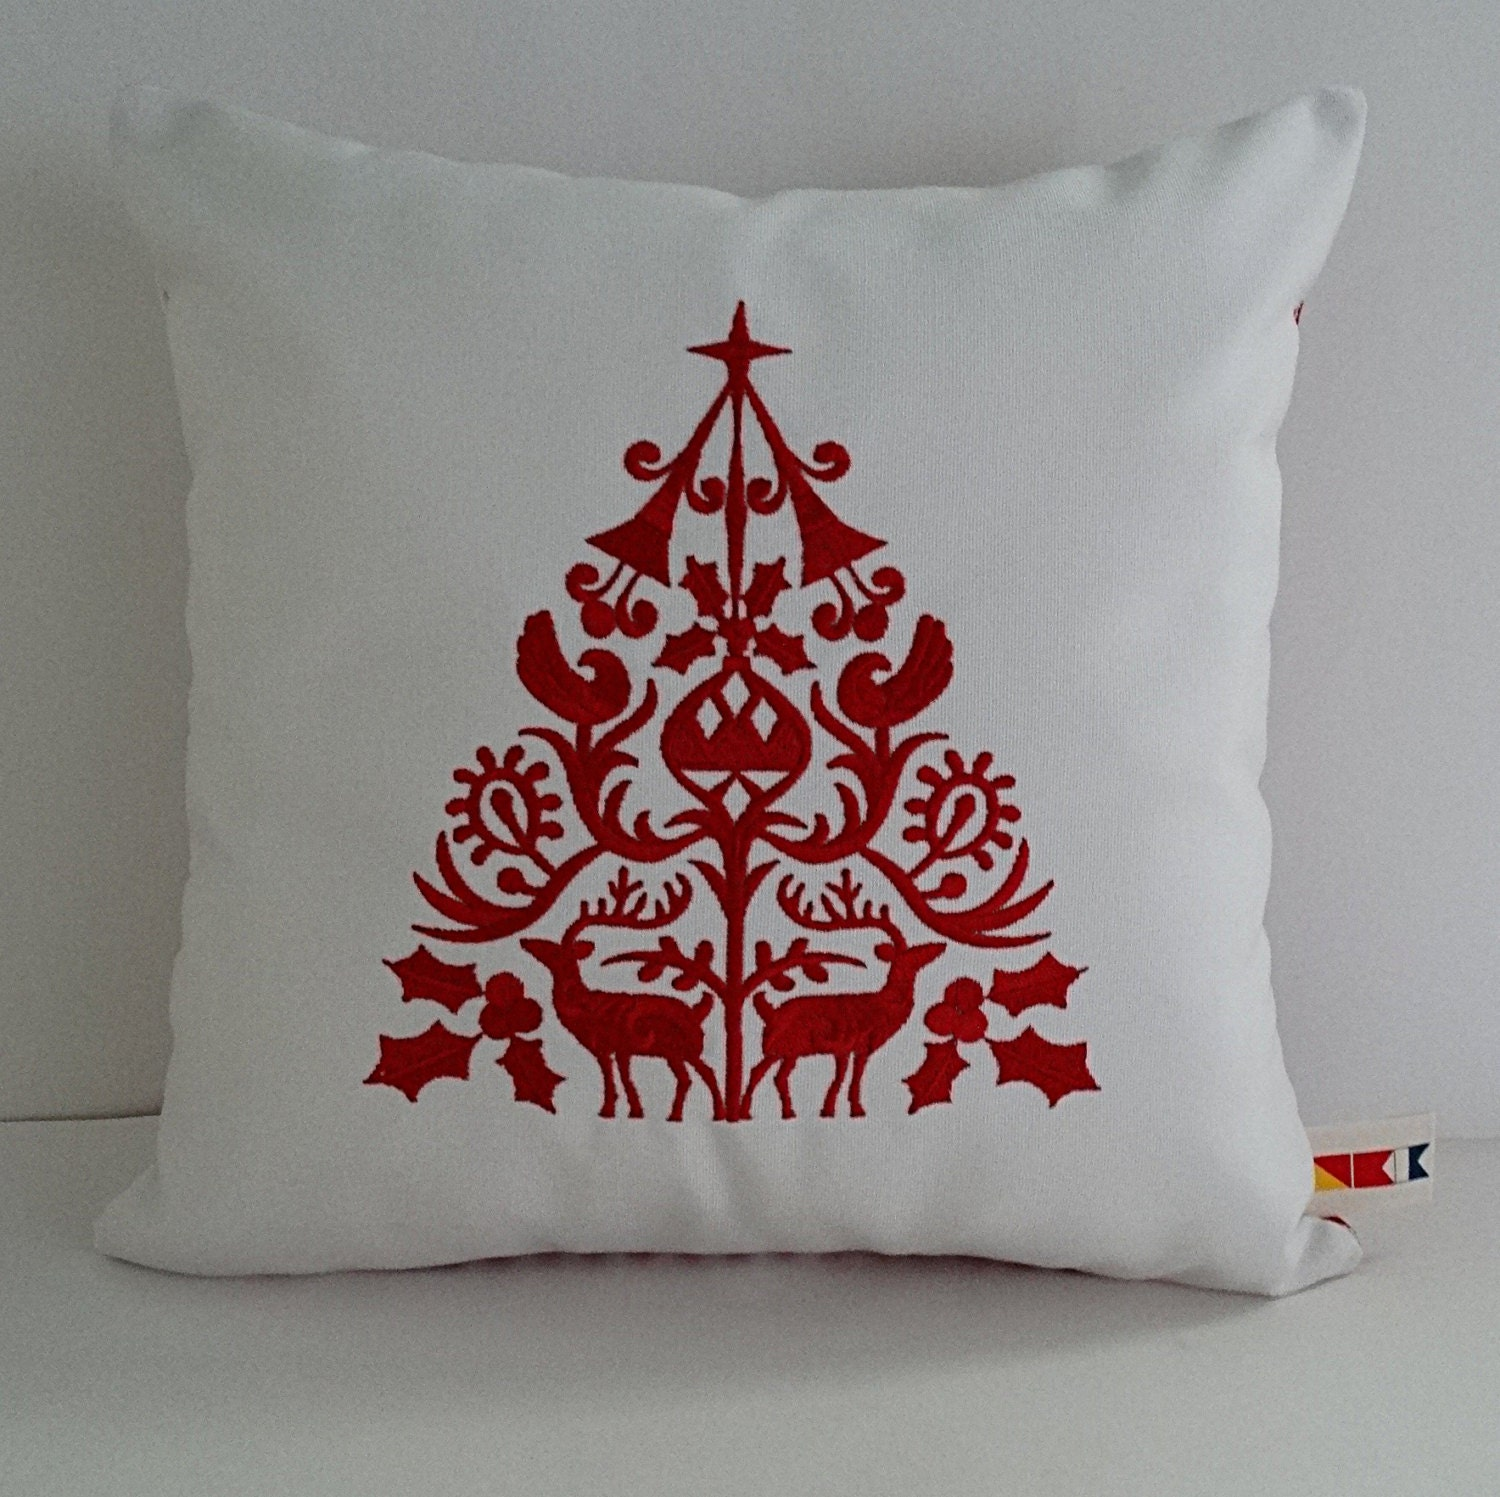 SCANDINAVIAN CHRISTMAS TREE embroidered pillow cover 19